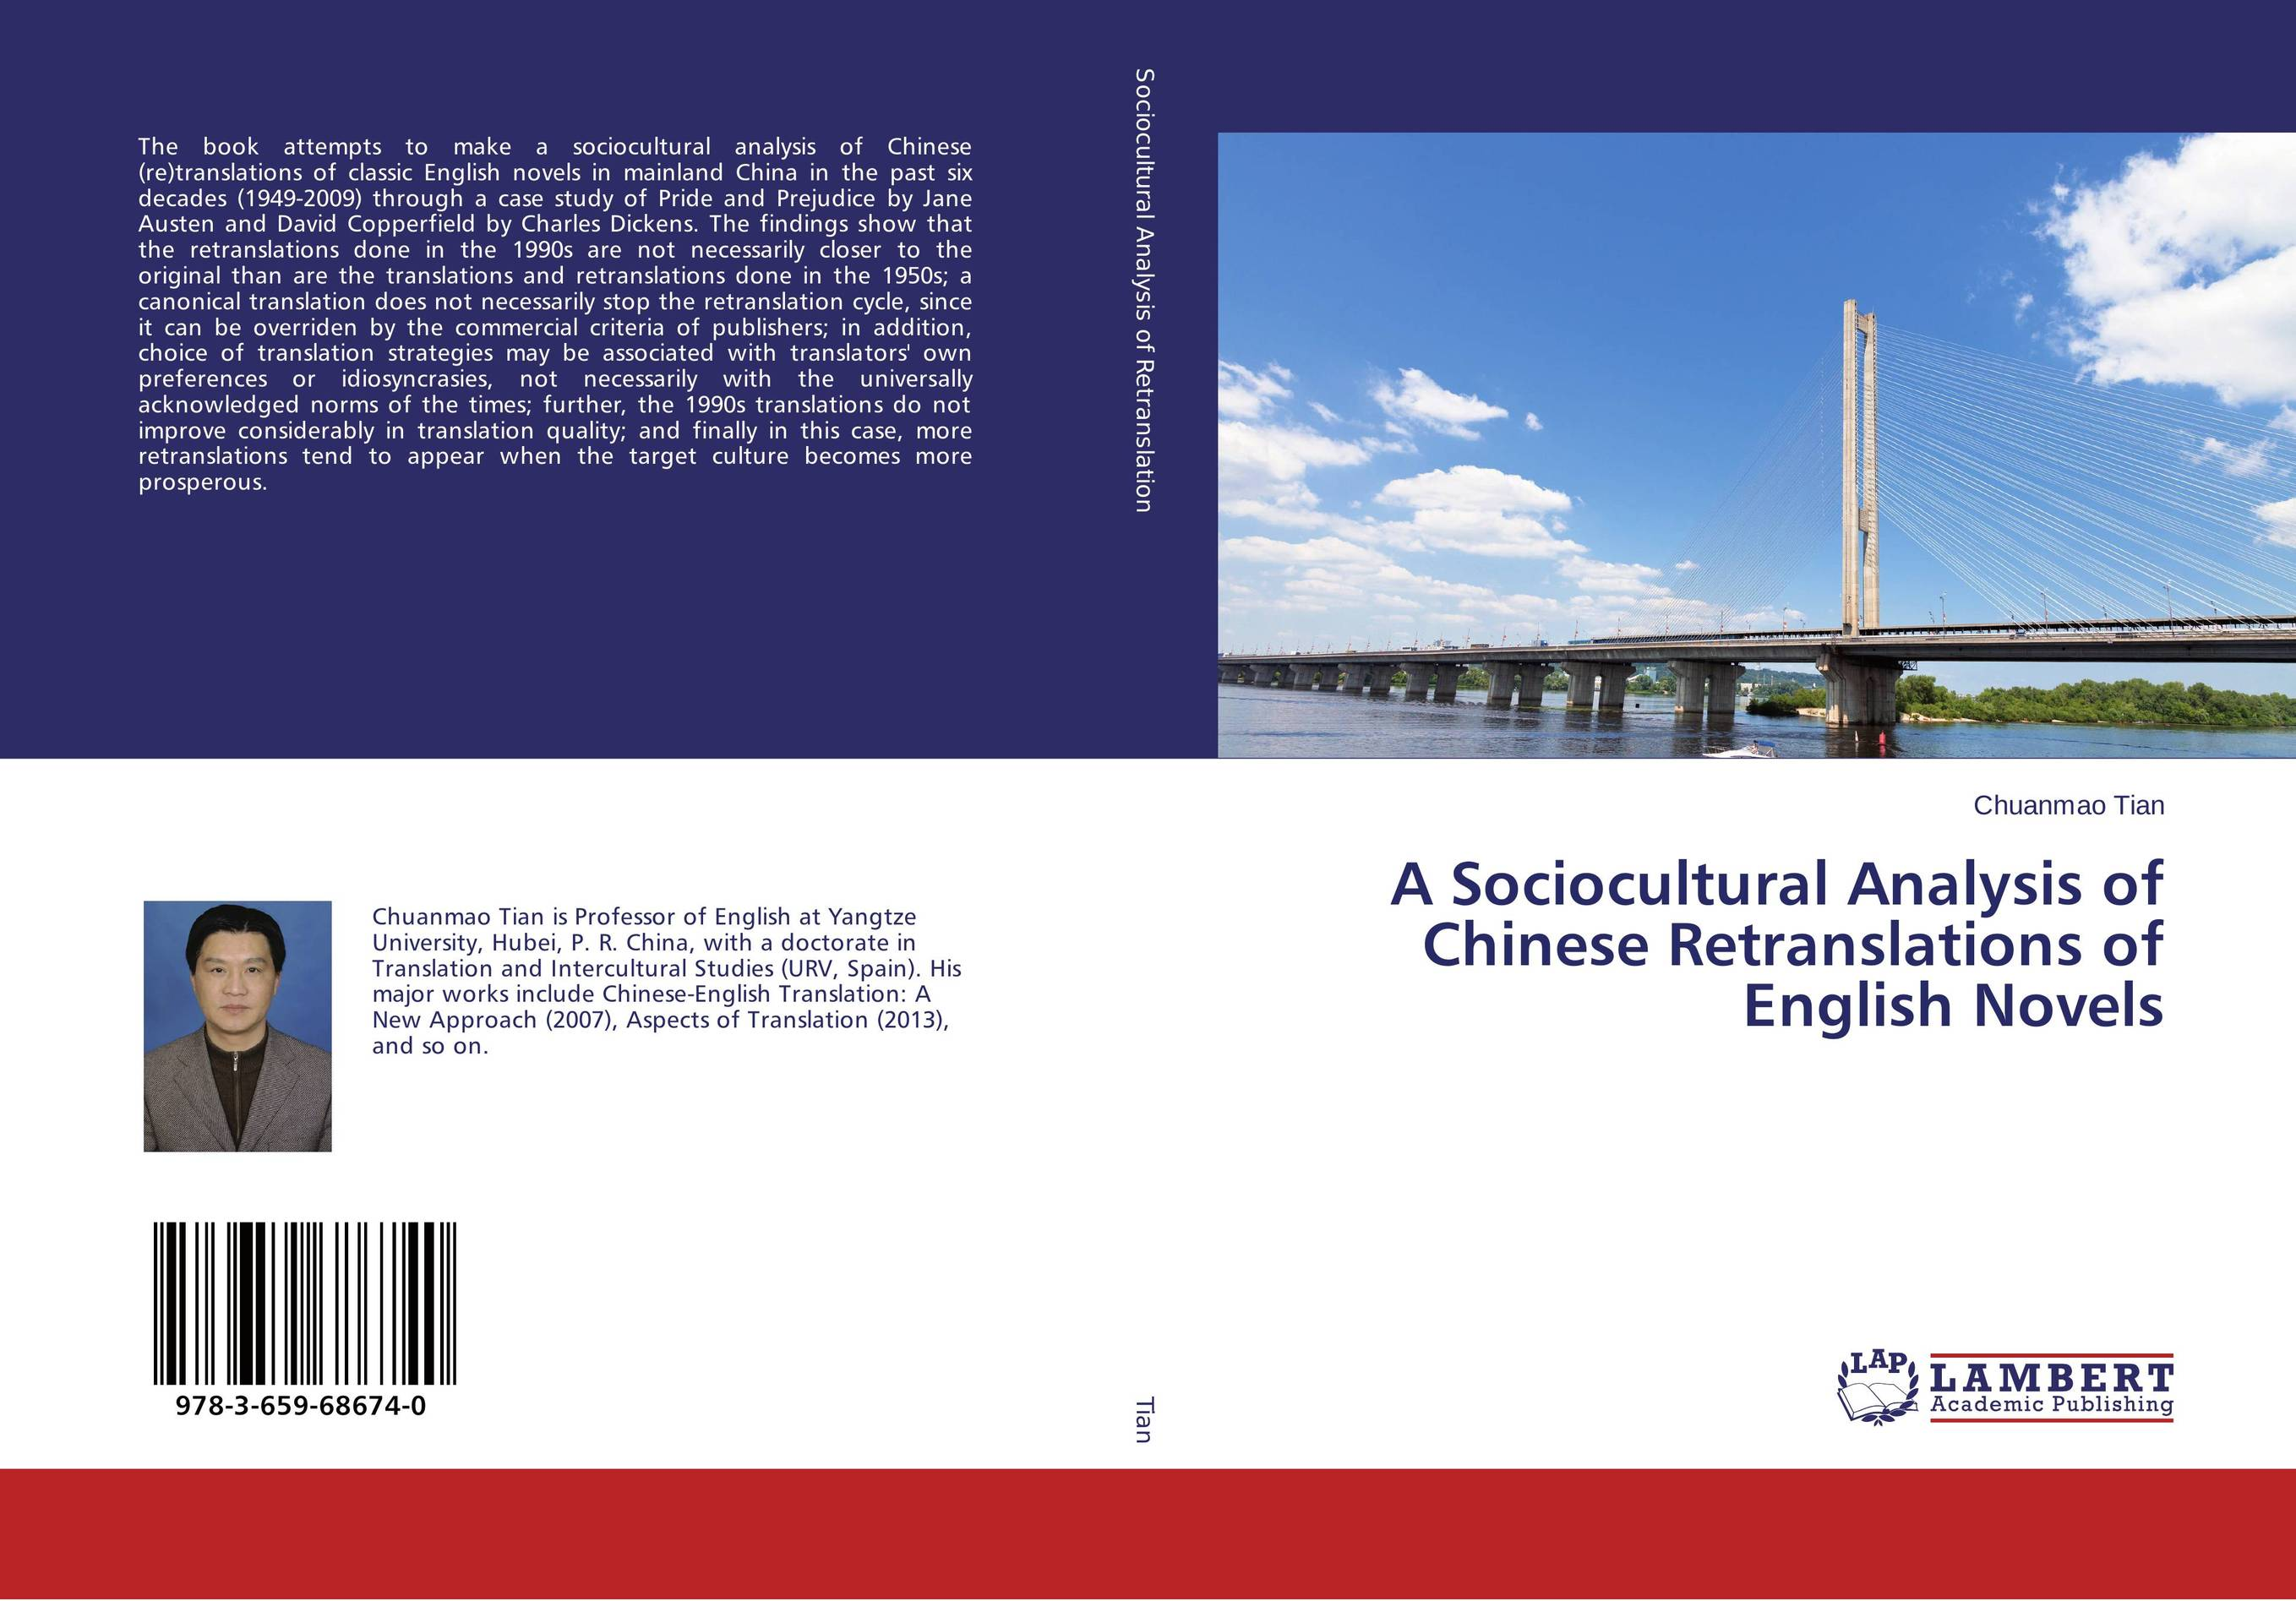 A Sociocultural Analysis of Chinese Retranslations of English Novels the internal load analysis in soccer